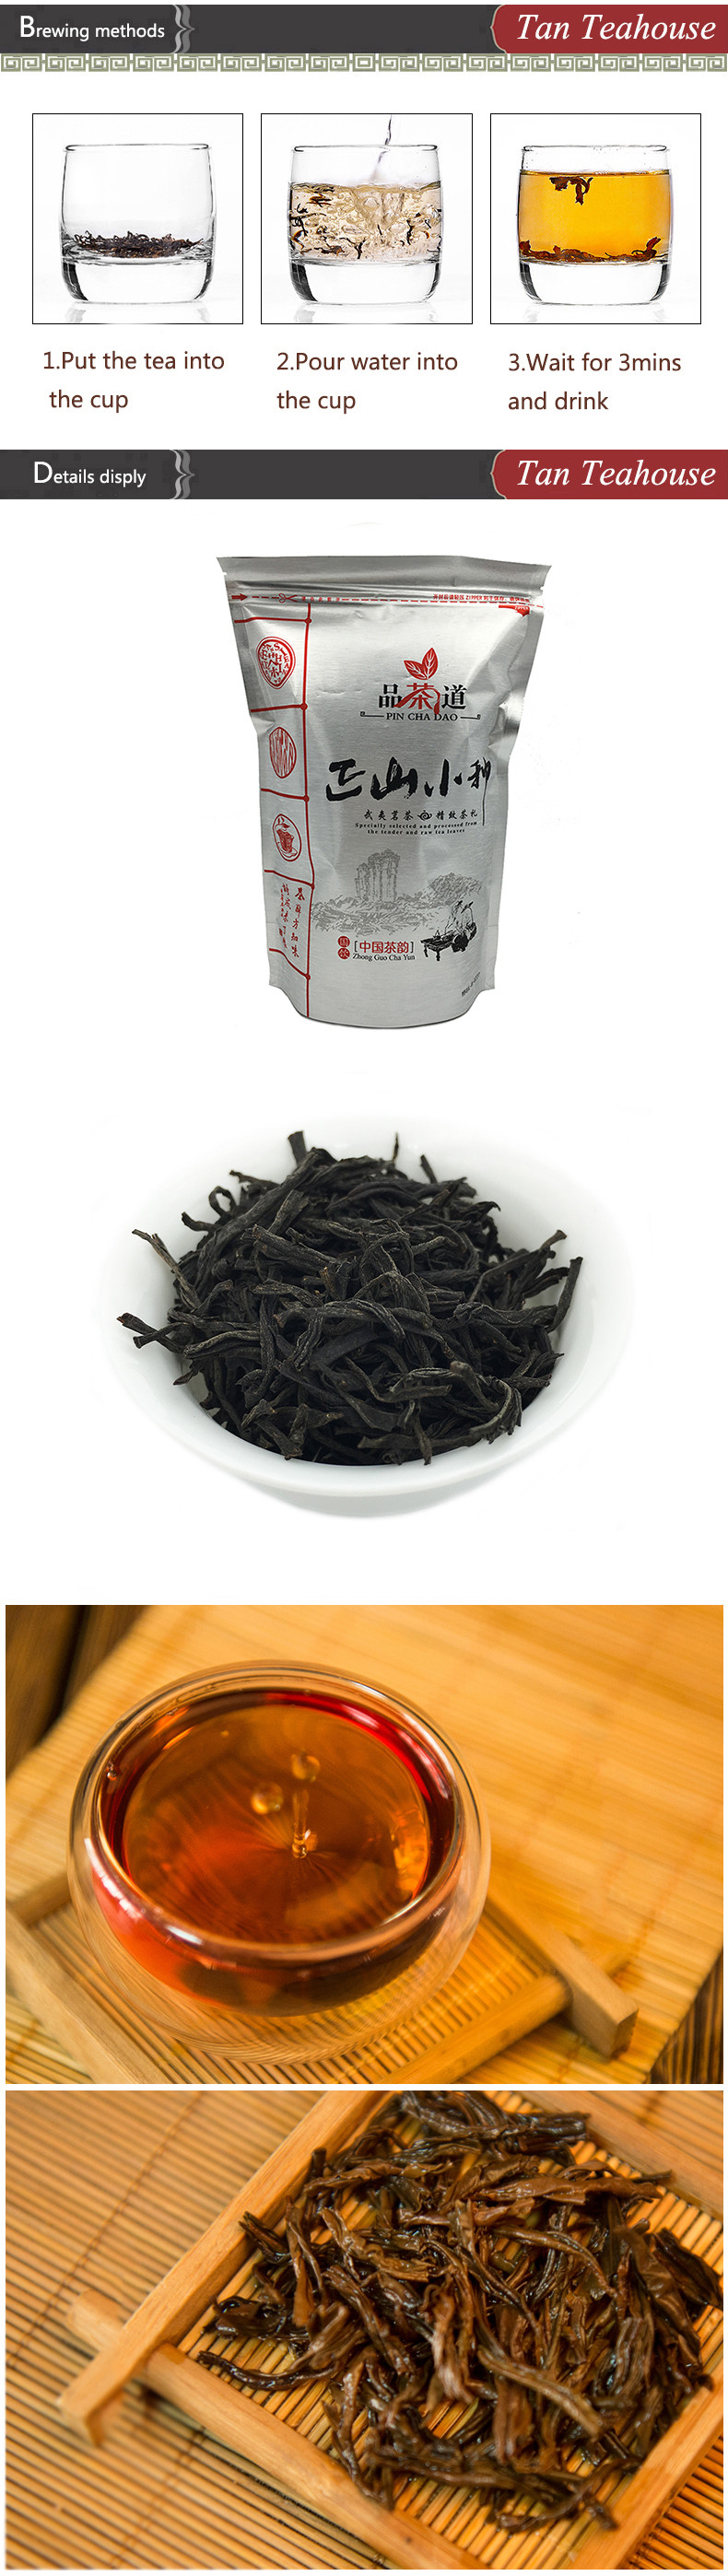 250g Chinese Black Tea Lapsang Souchong Smoke Longan Flavor Lapsang Souchong Black Tea Red Tea Zheng Shan Xiao Zhong health care cheap